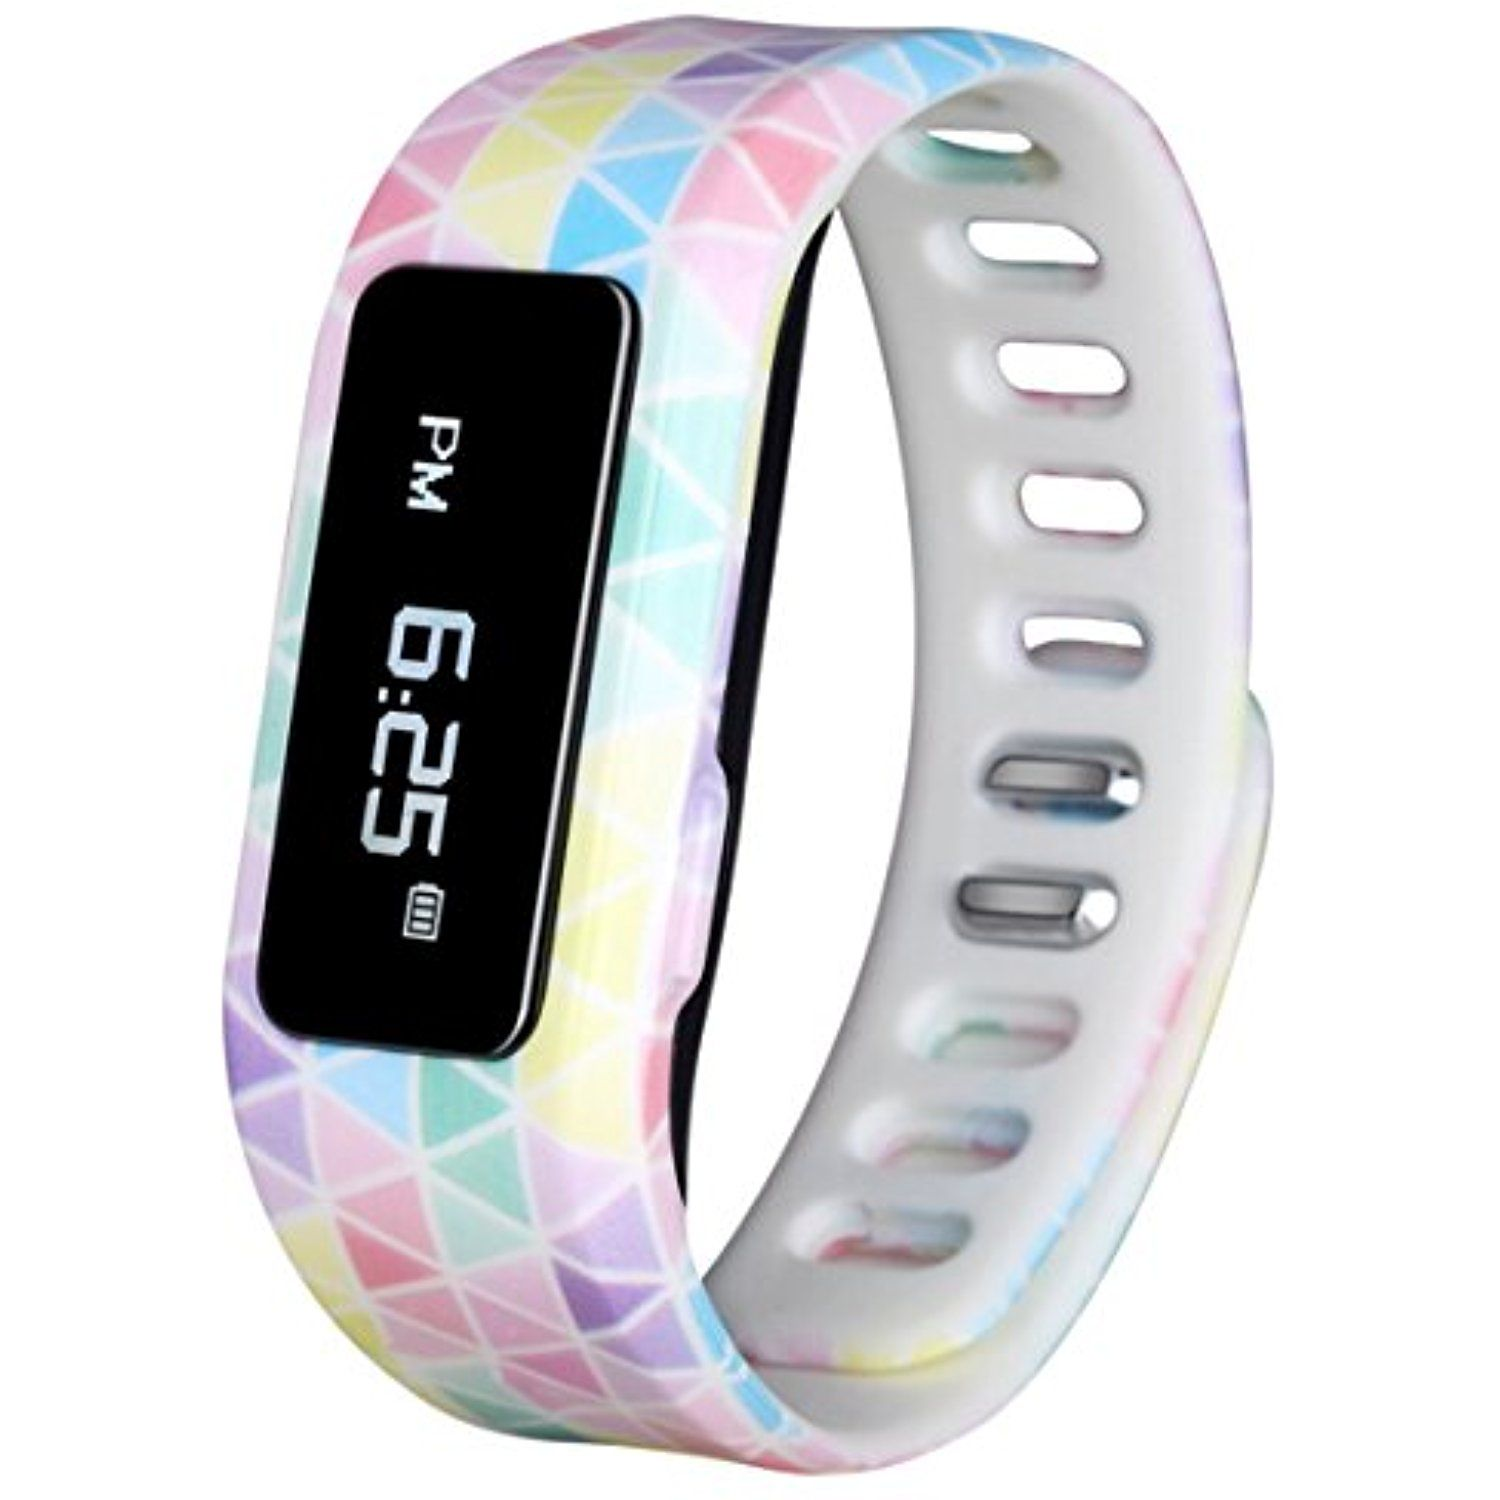 Kids Fitness Watch Activity Tracker